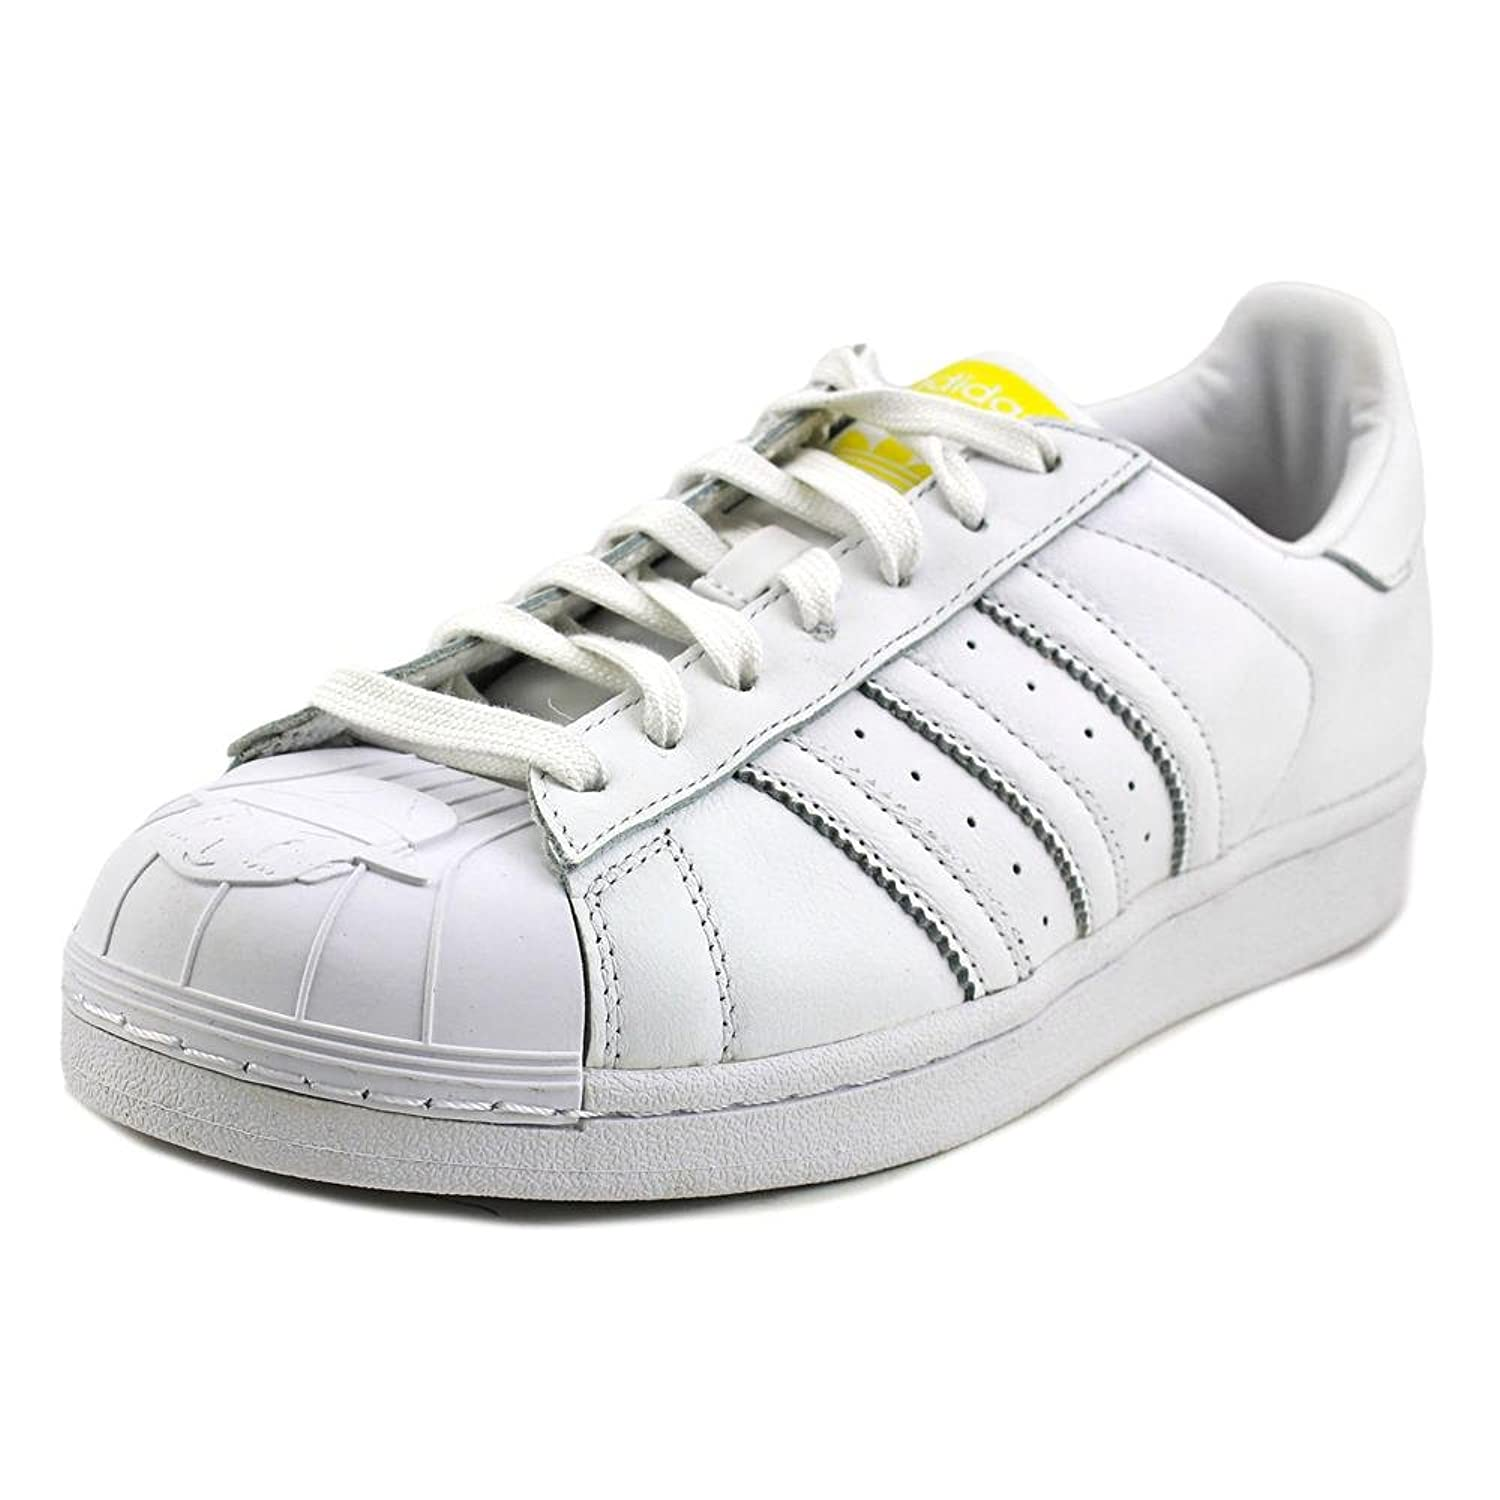 cheap for discount 2be37 4ffdc Amazon.com   Adidas Superstar Pharrell Supershell Men Round Toe Leather  Sneakers   Fashion Sneakers